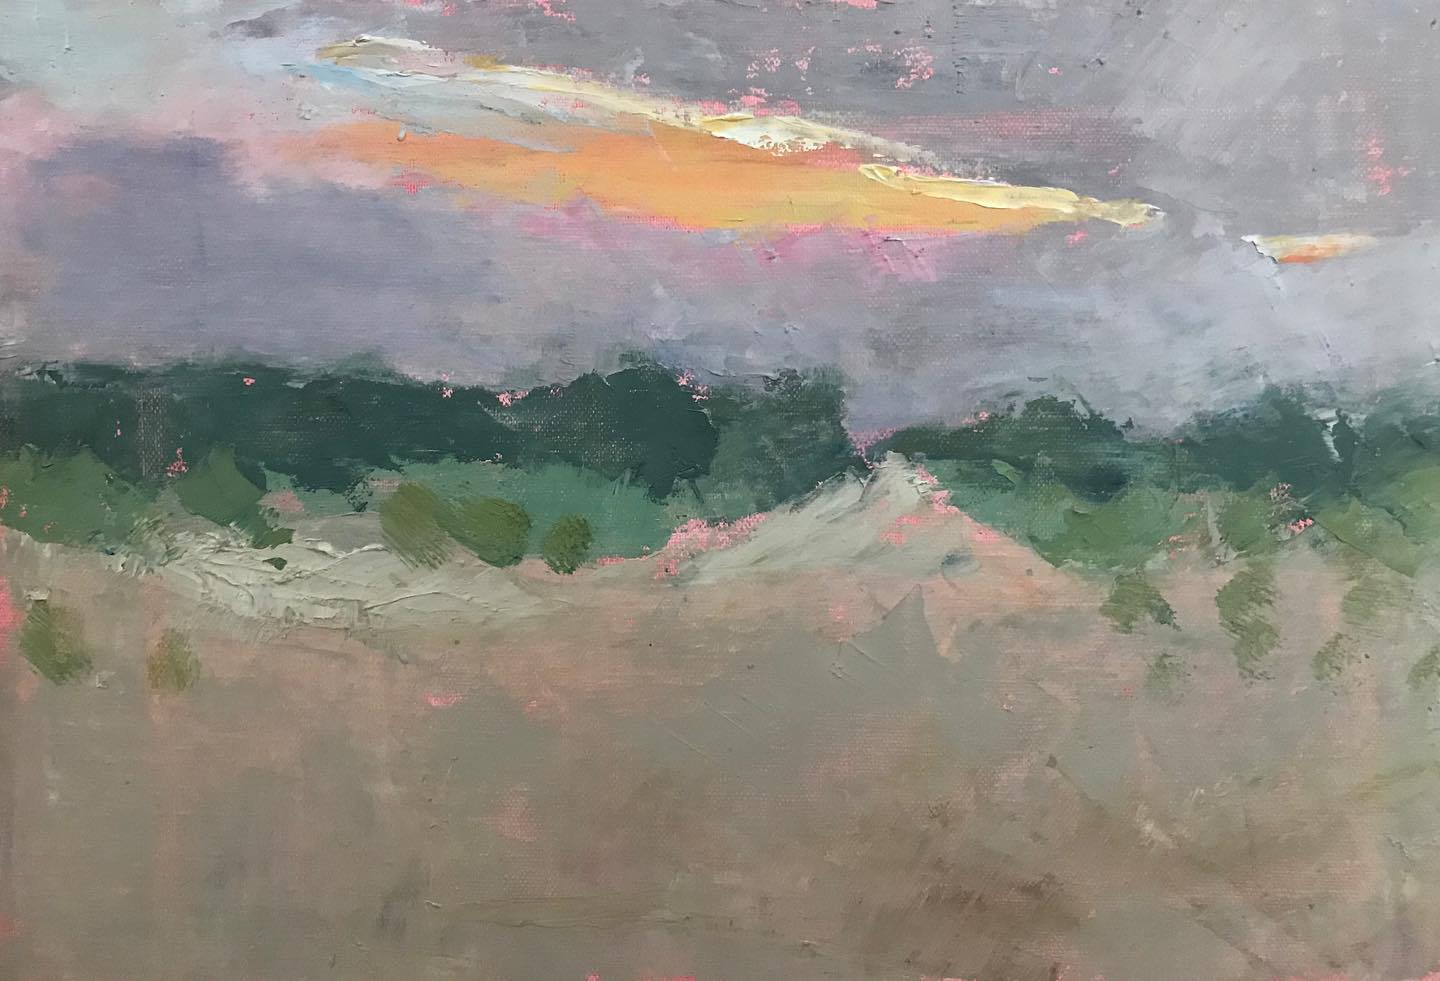 """Sunrise over beach dunes""    oil on linen mounted on board 7.25x10.75 inches"